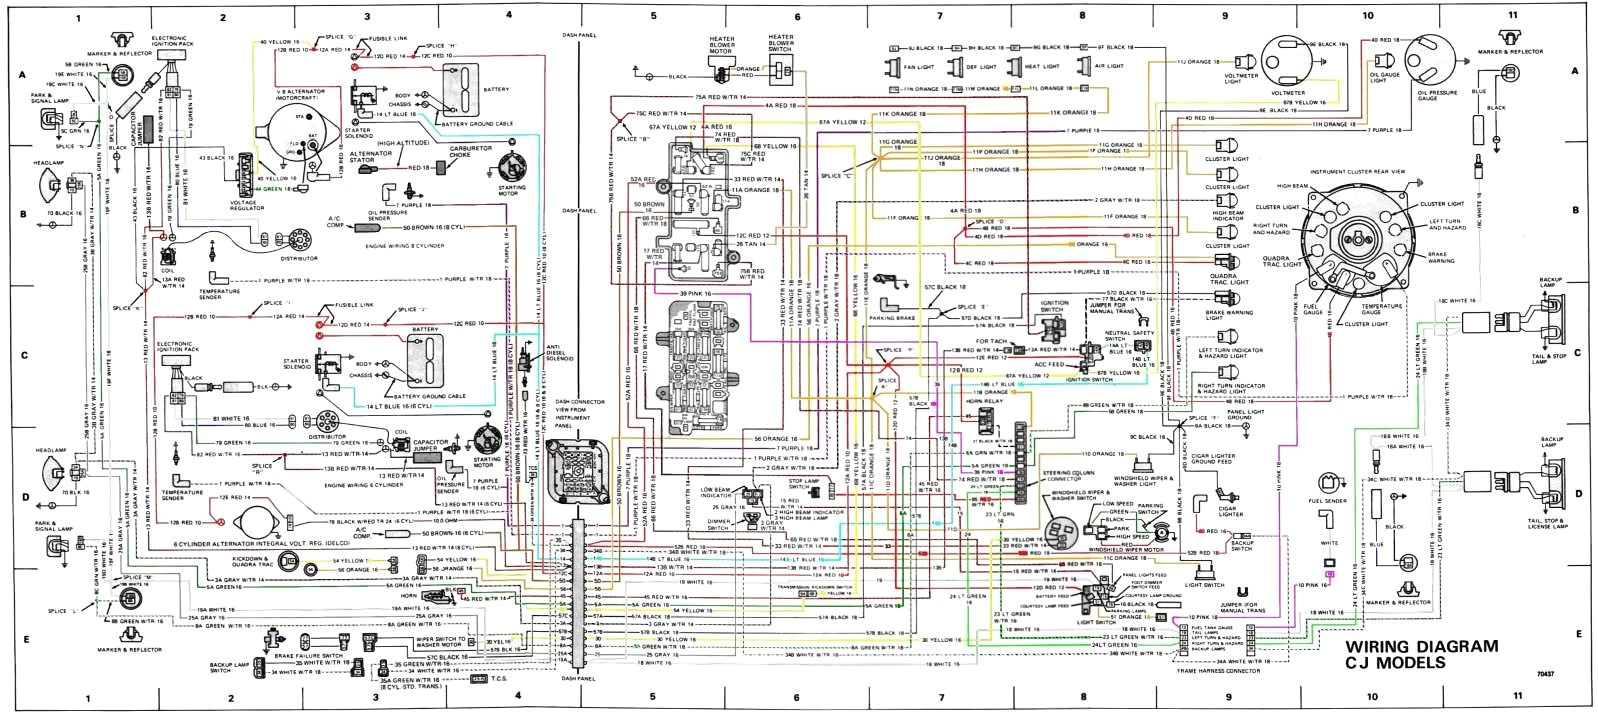 wiring harness for 1969 jeep cj5 wiring diagram for you 1969 jeep gladiator wiring diagram 1969 jeep wiring diagram